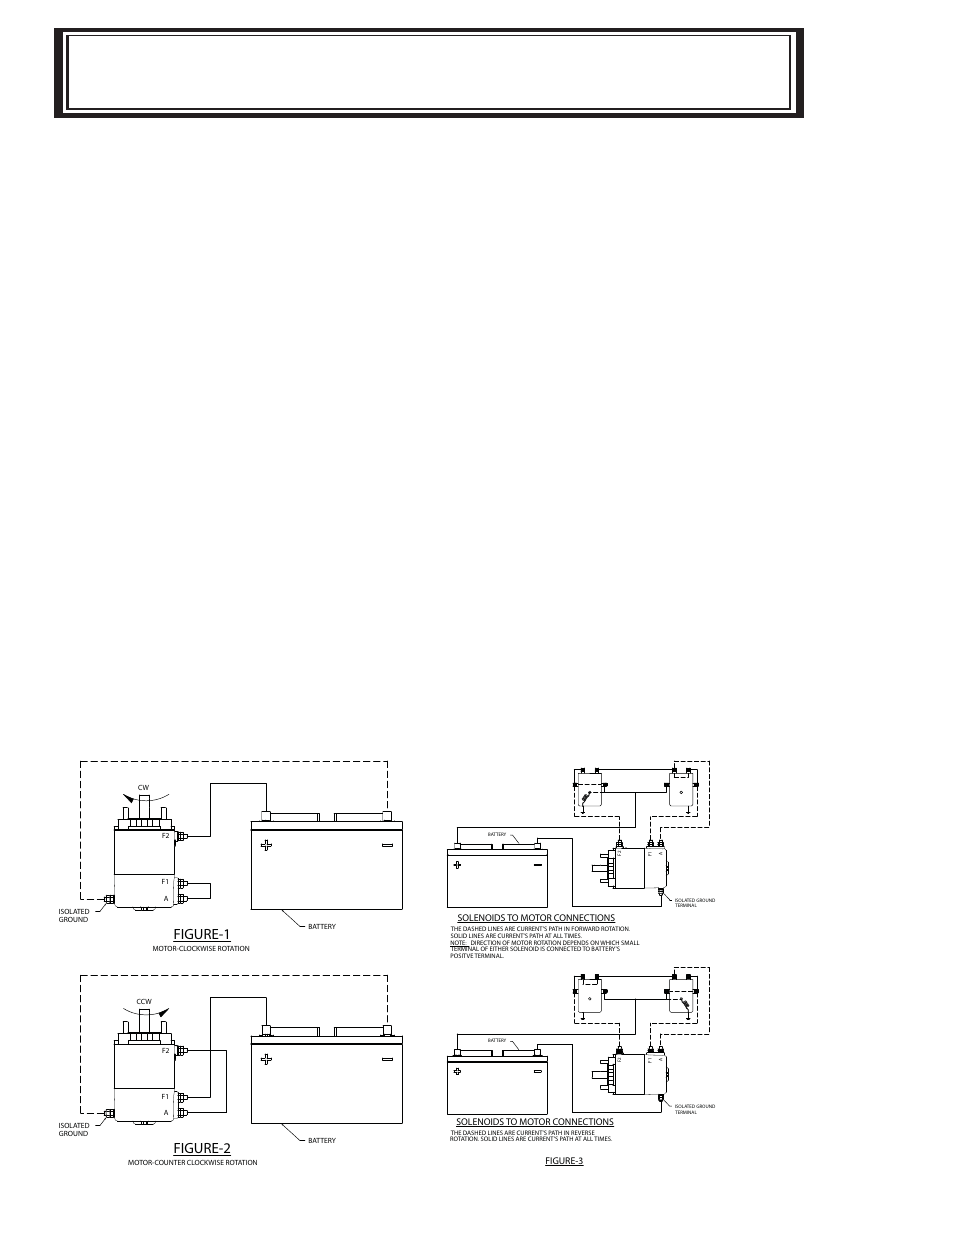 ramsey winch parts diagram wiring diagrams wiring diagrams images of ramsey  winch wiring diagram wiring diagram schematic ramsey pro 8000 winch  breakdown